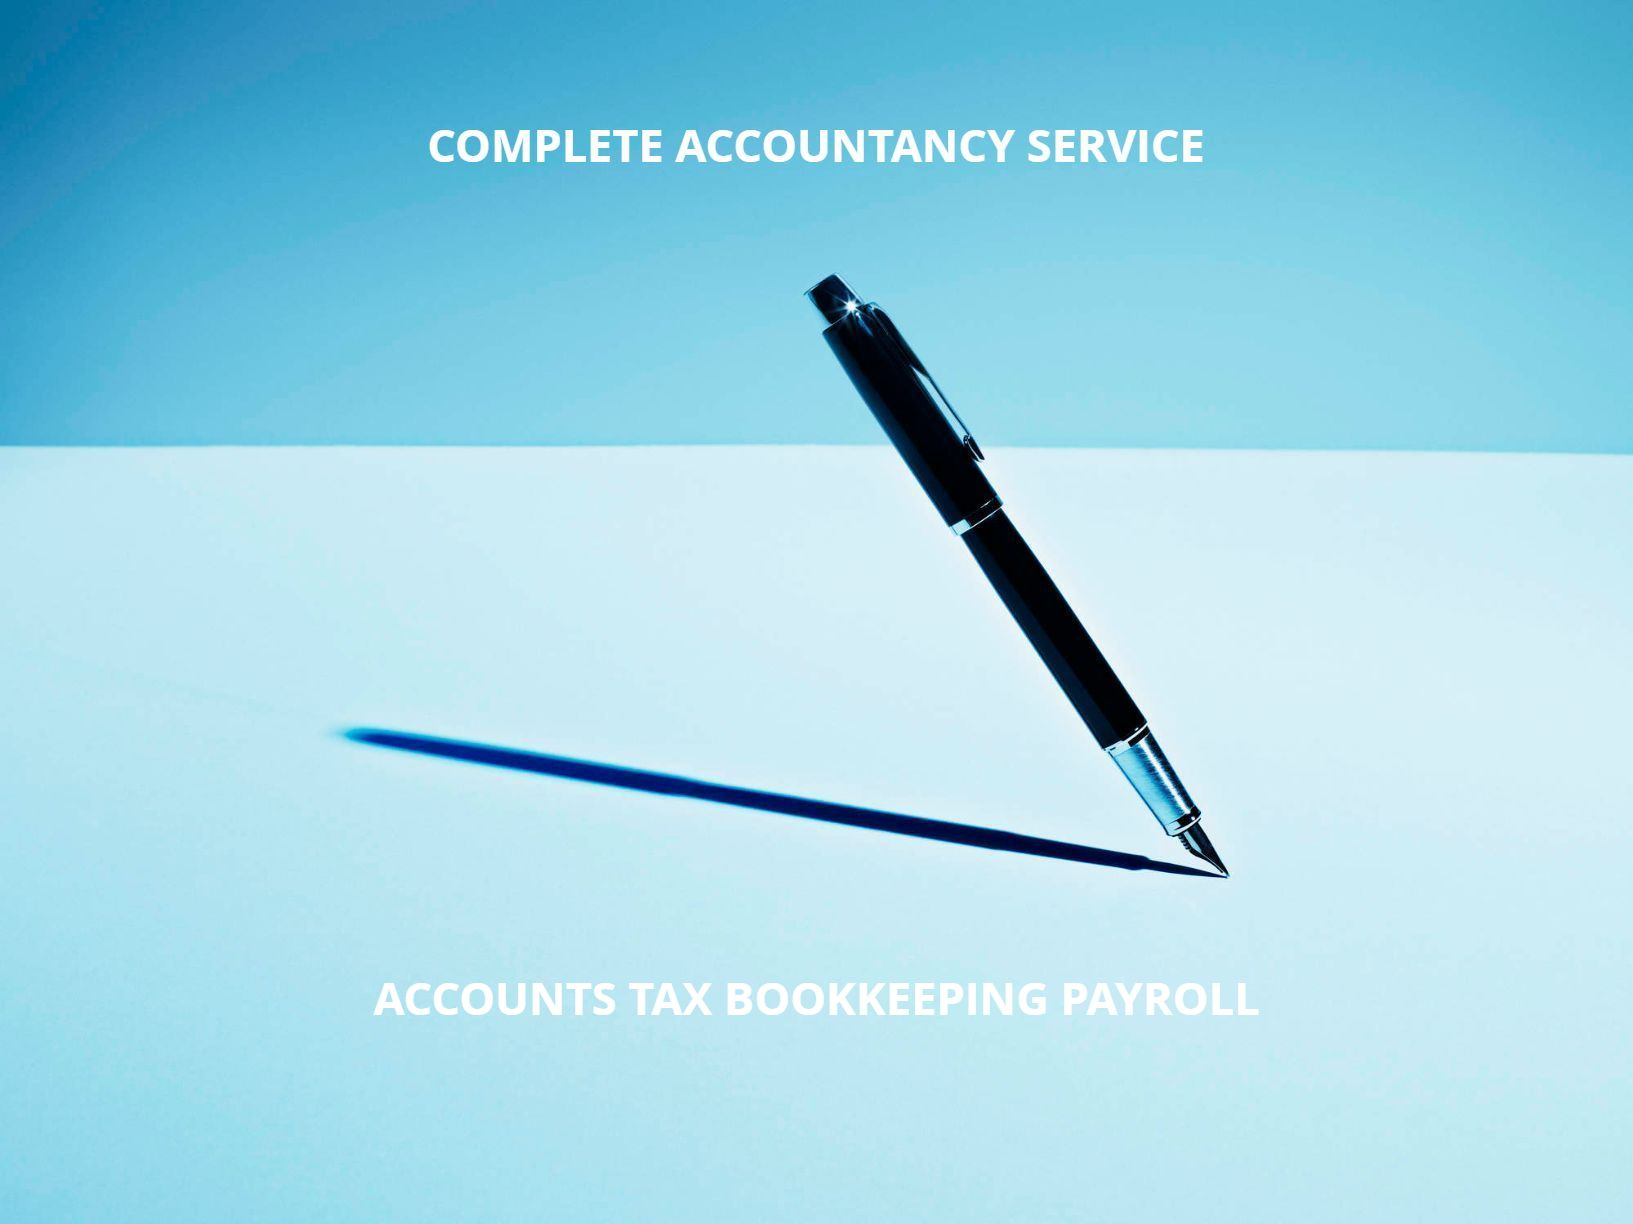 Complete accountancy service